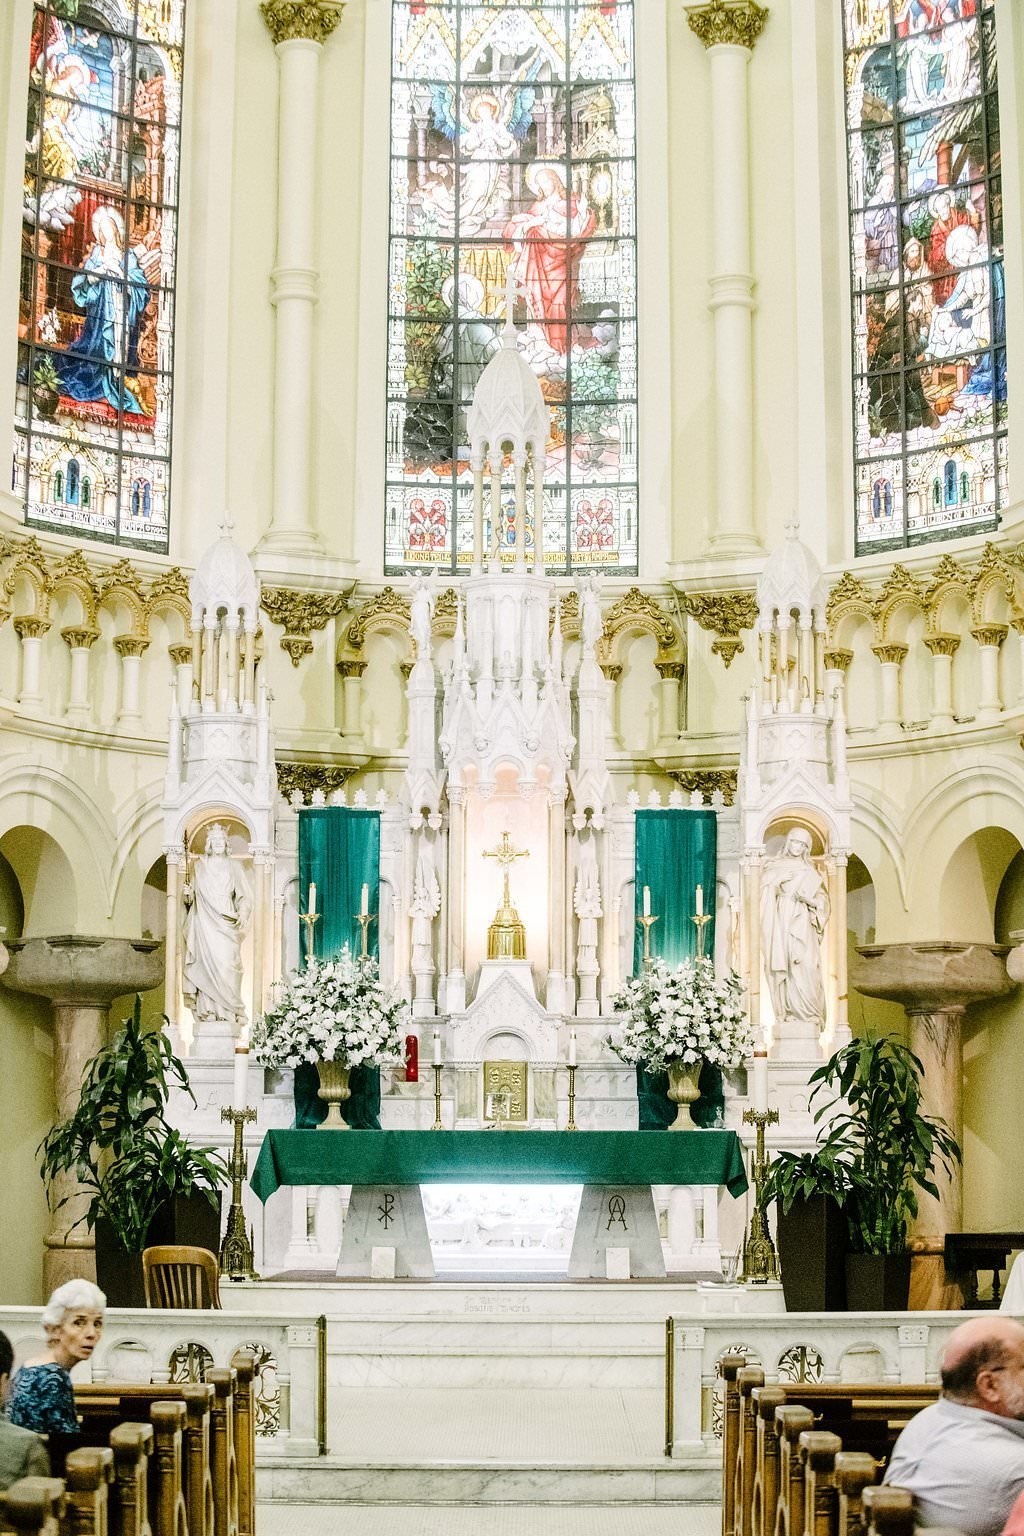 traditional church alter for wedding